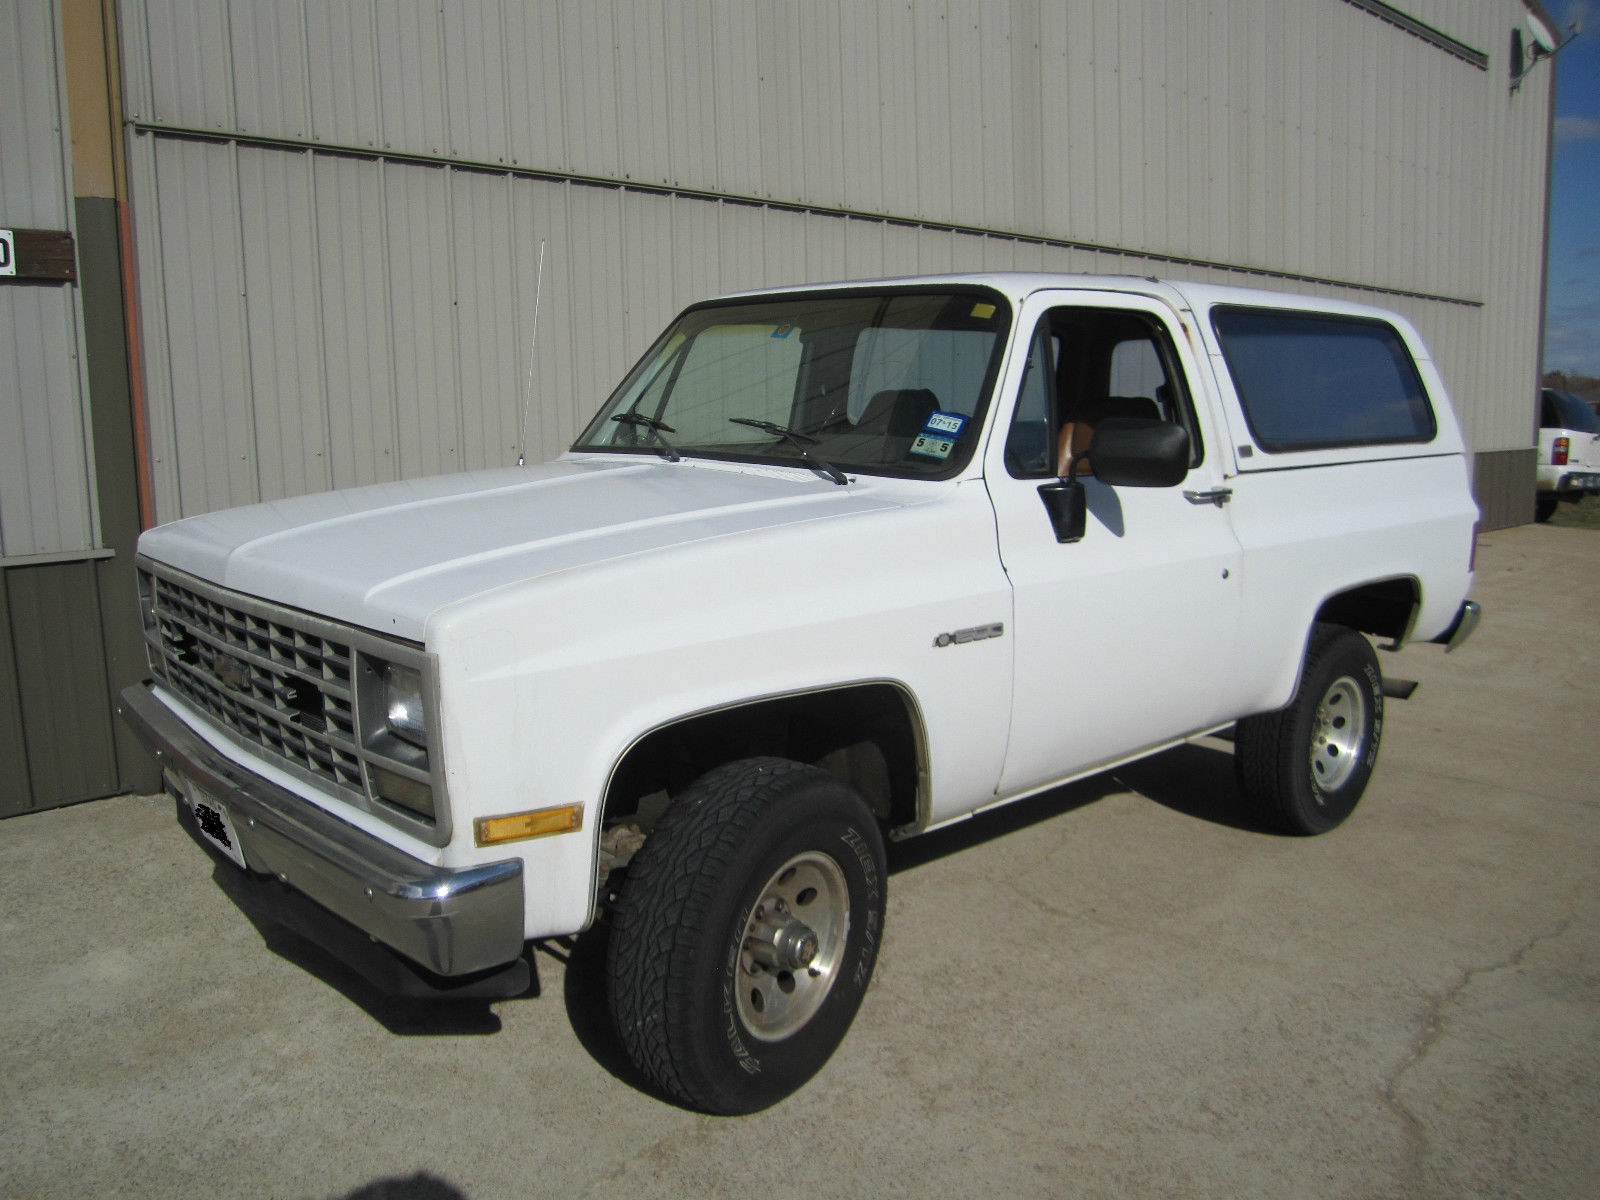 Find Used Chevrolet Blazer for Sale. Find car prices, photos, and more. Locate car dealers and find your car at Autotrader!Body Style: Convertible.